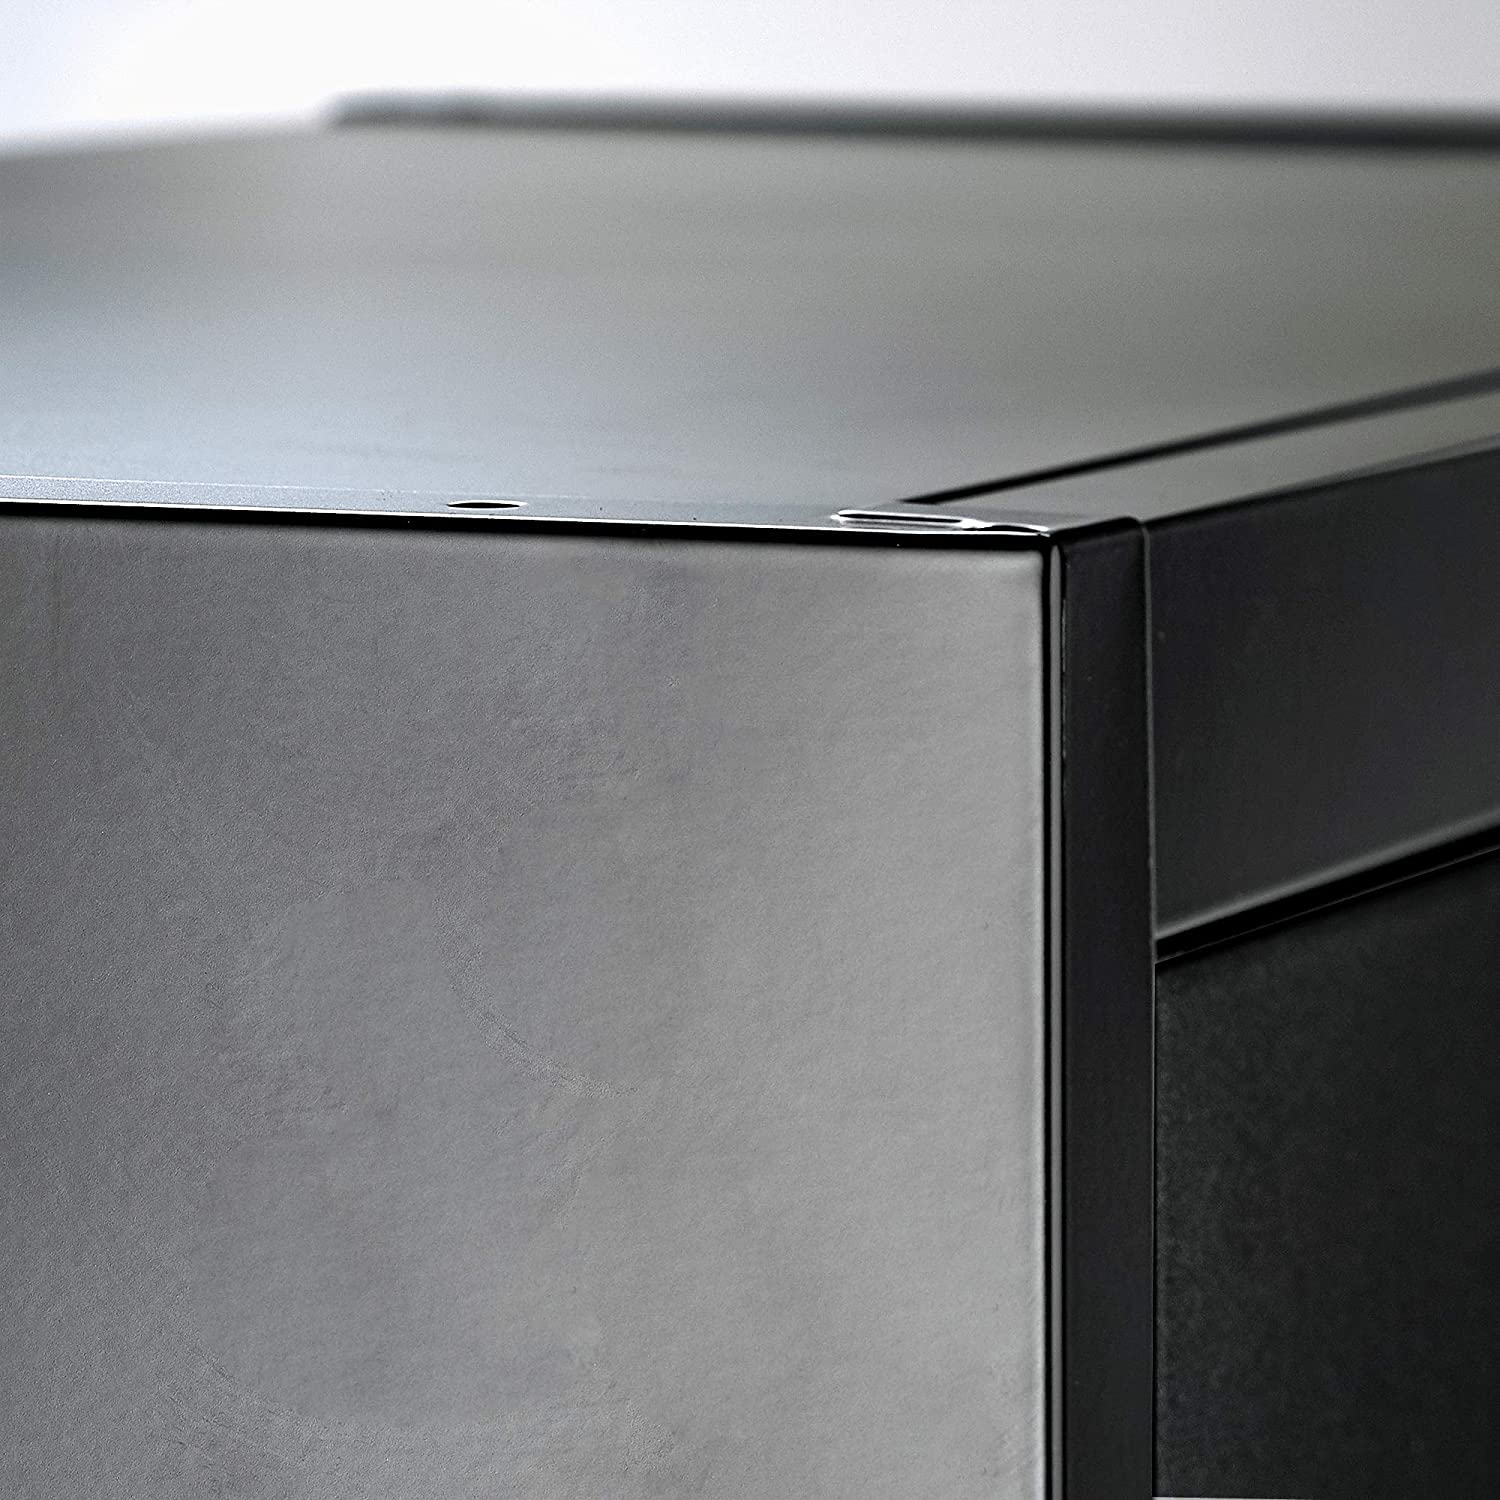 Black Doors Lockable Doors and Adjustable Shelves Office and Laundry Room Metal Storage Cabinet 71 Tall 70.86 Tall x 31.5 W x 15.75 D Great Steel Locker for Garage Kitchen Pantry